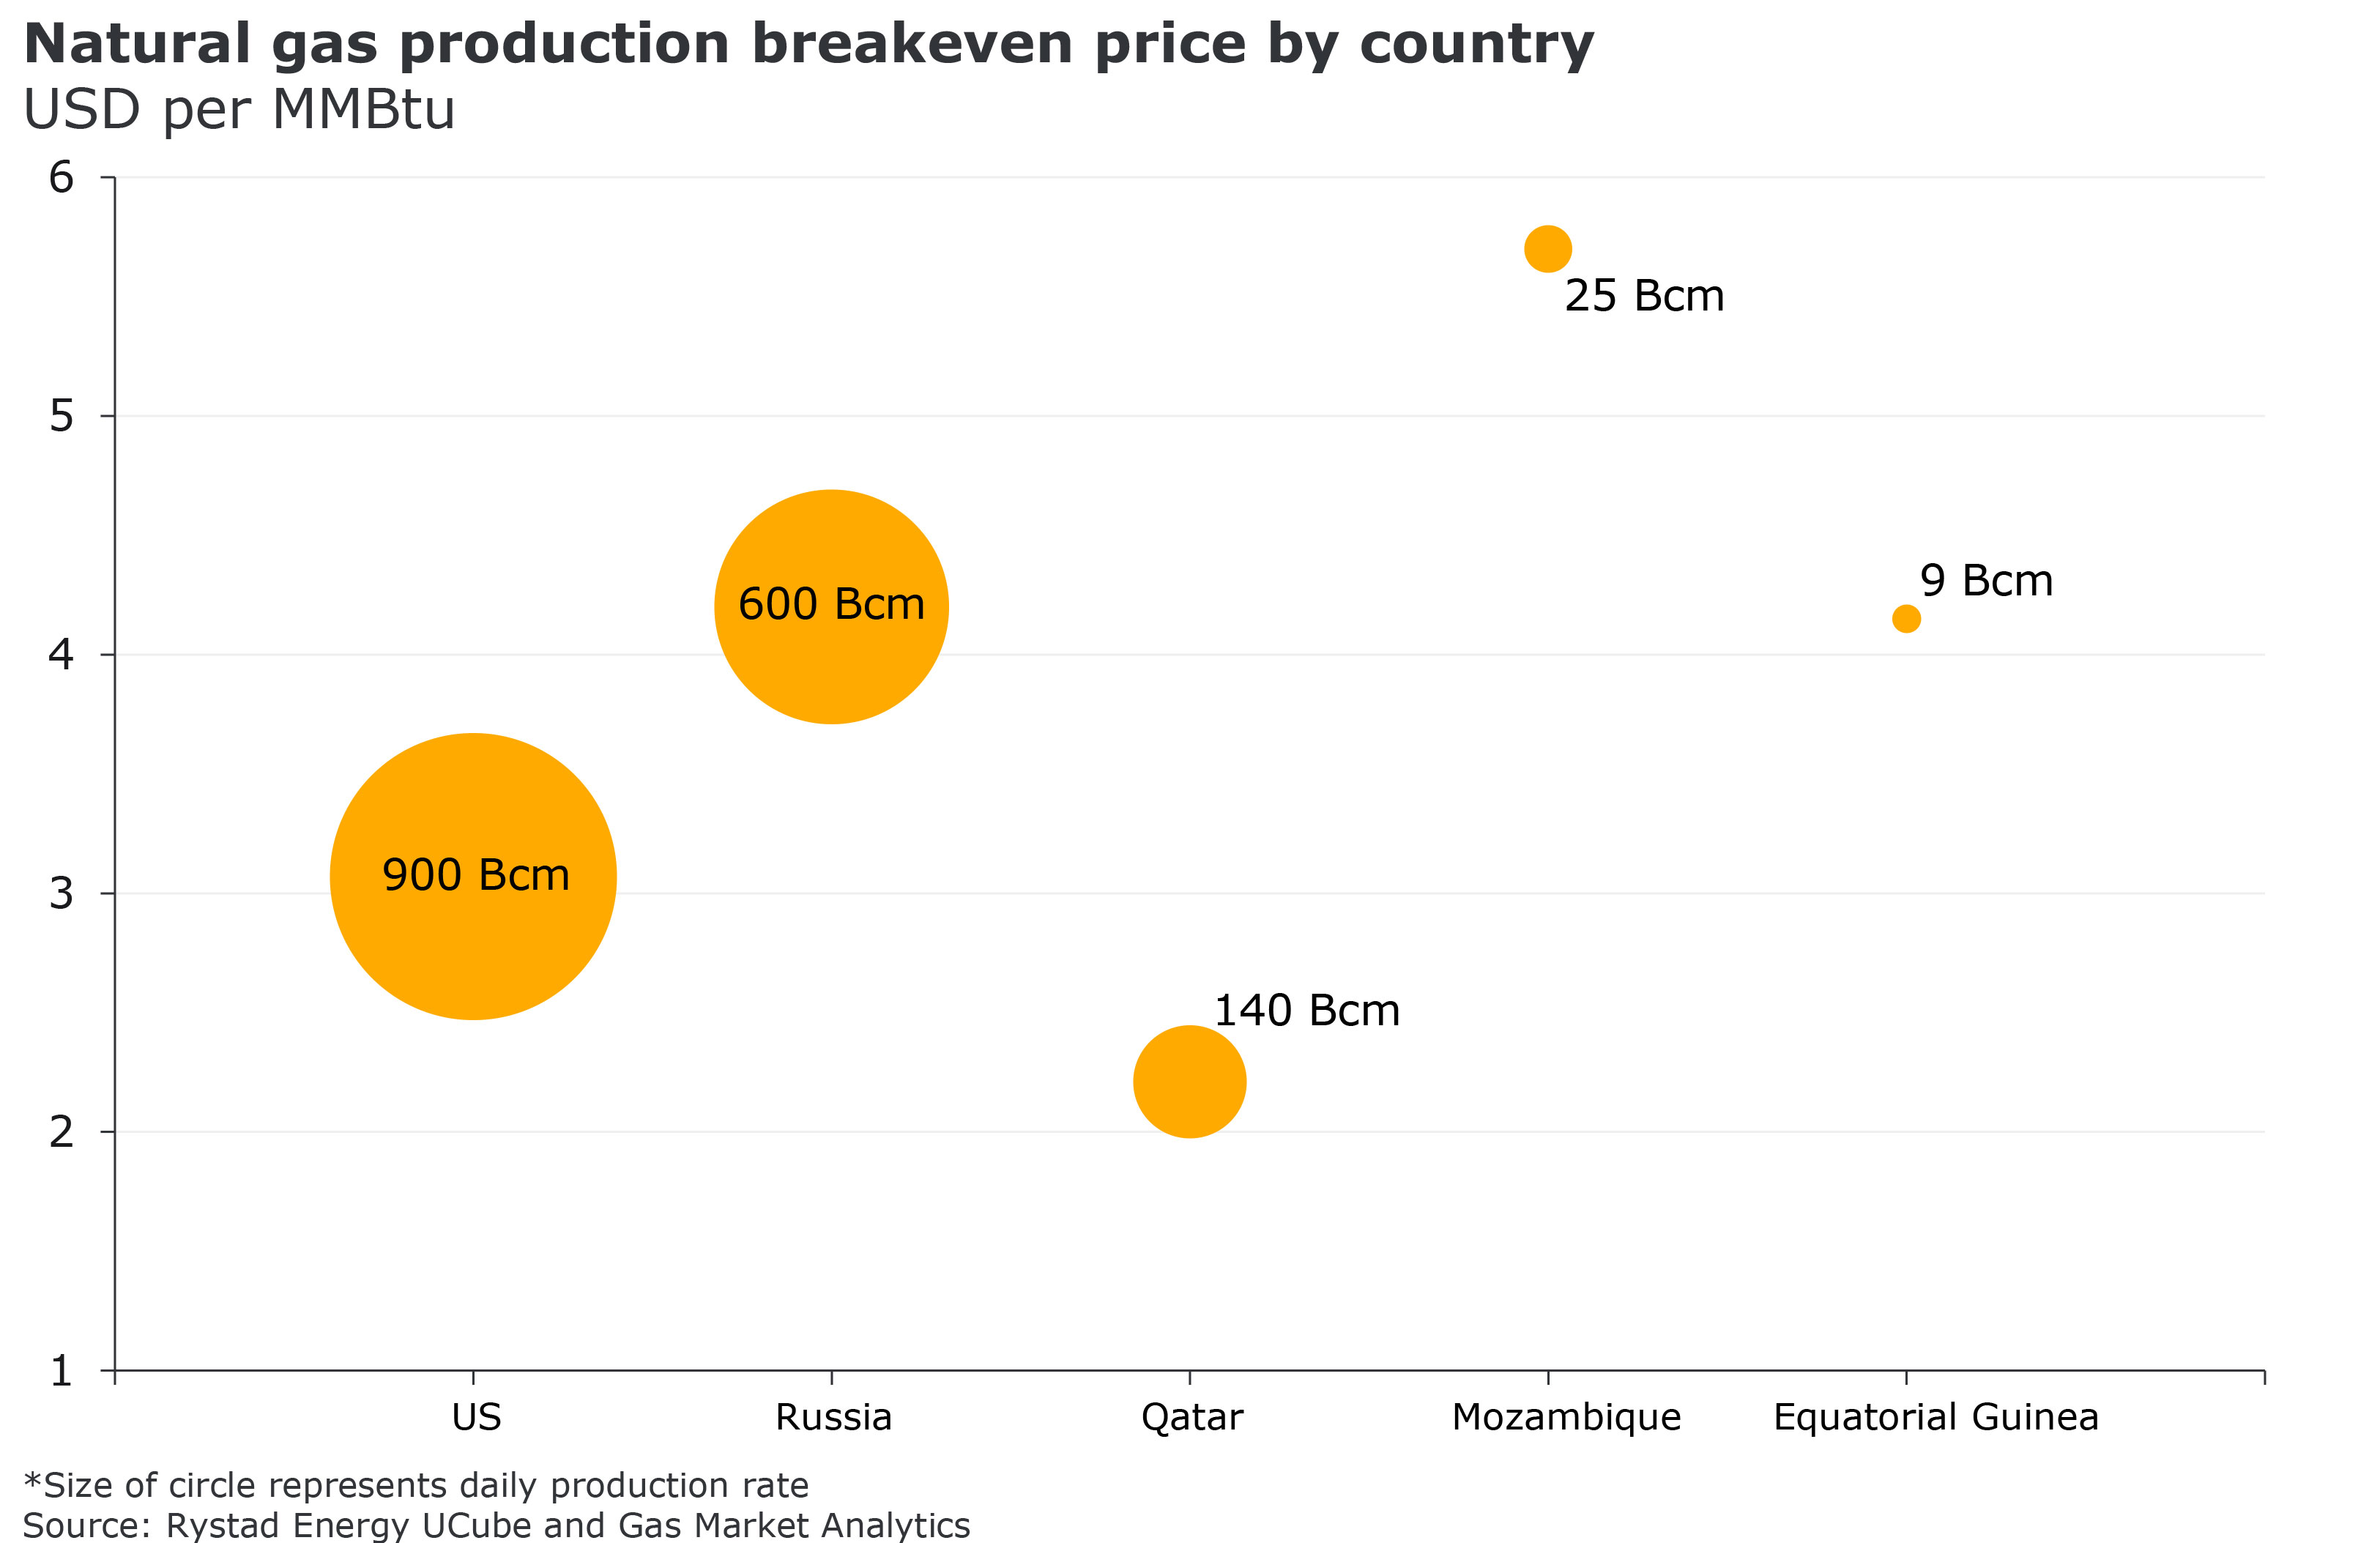 A chart showing Natural gas production breakeven proce by country in USD per MMBtu